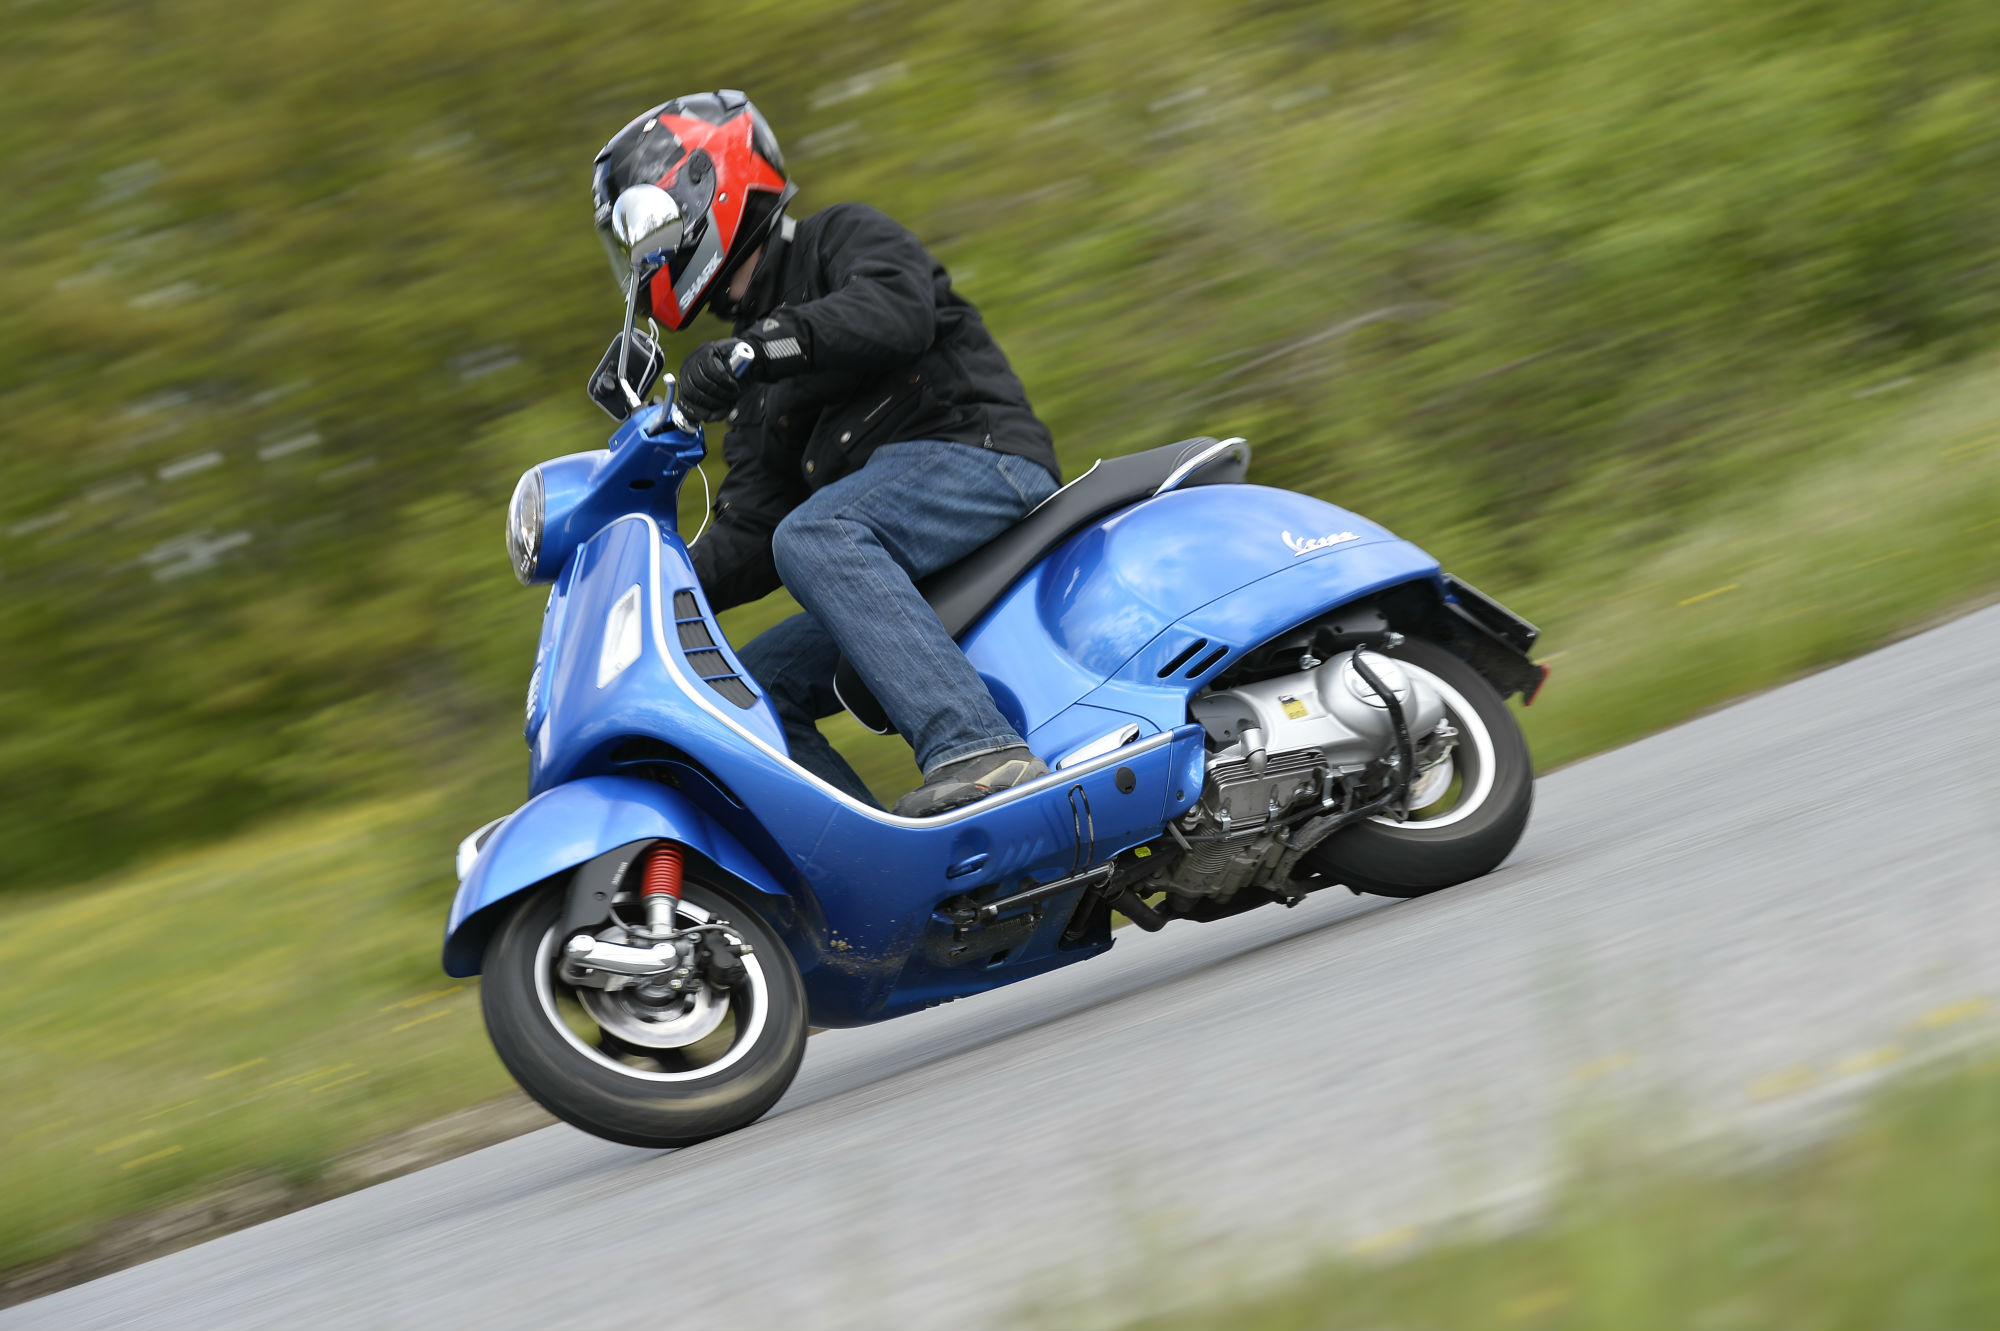 First ride: Vespa GTS 300 Super review | Visordown